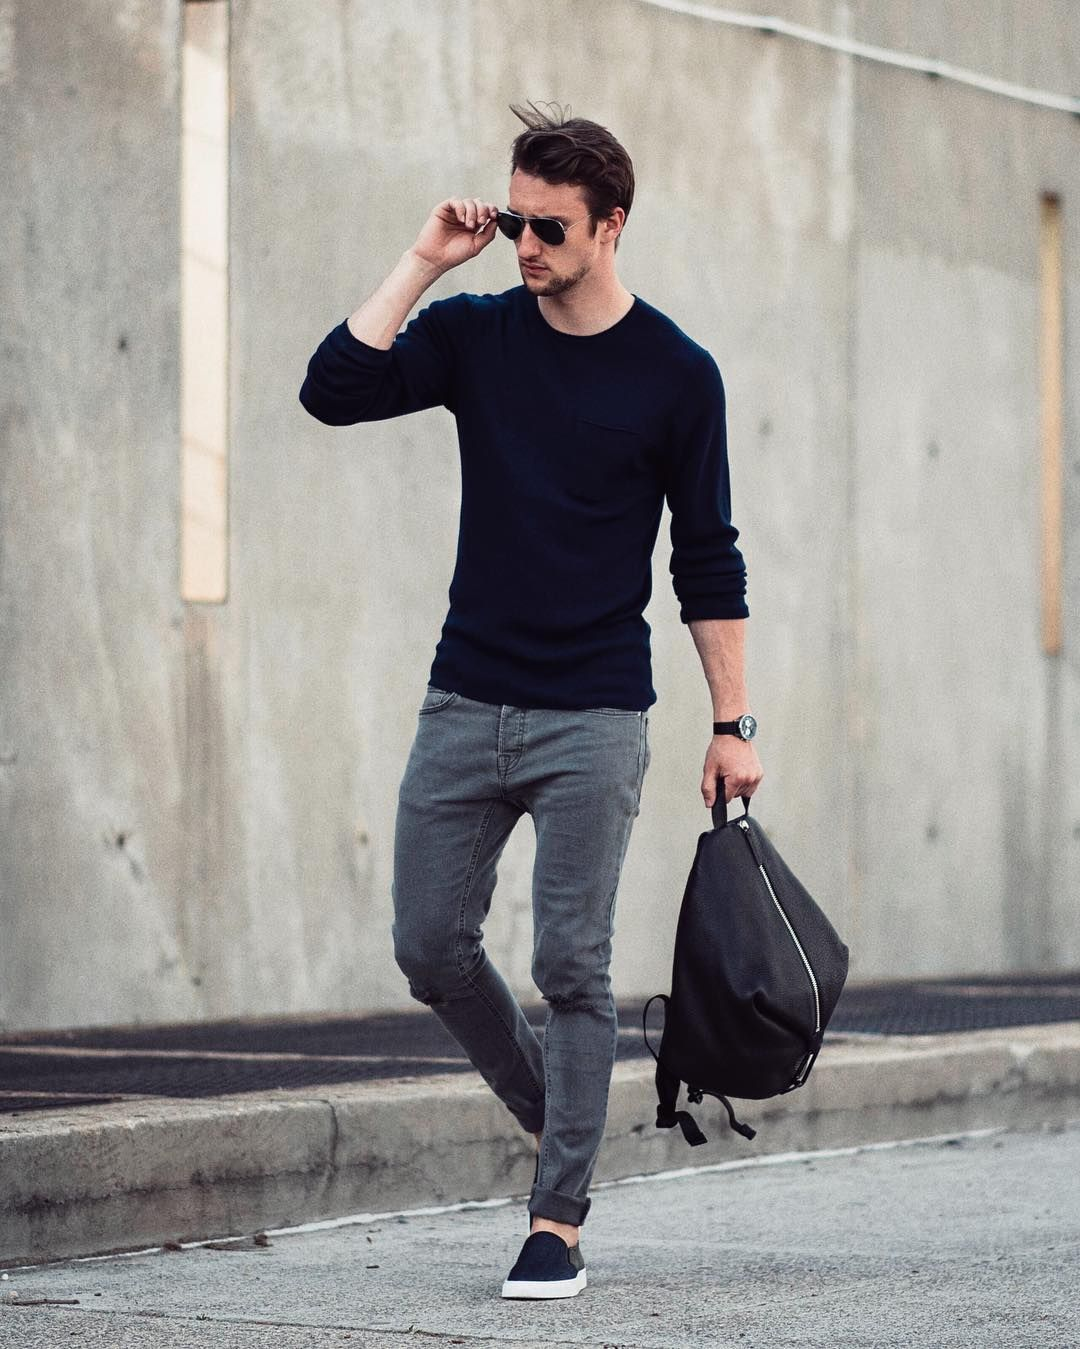 5 outfits that will make you look way cooler | men's fashion